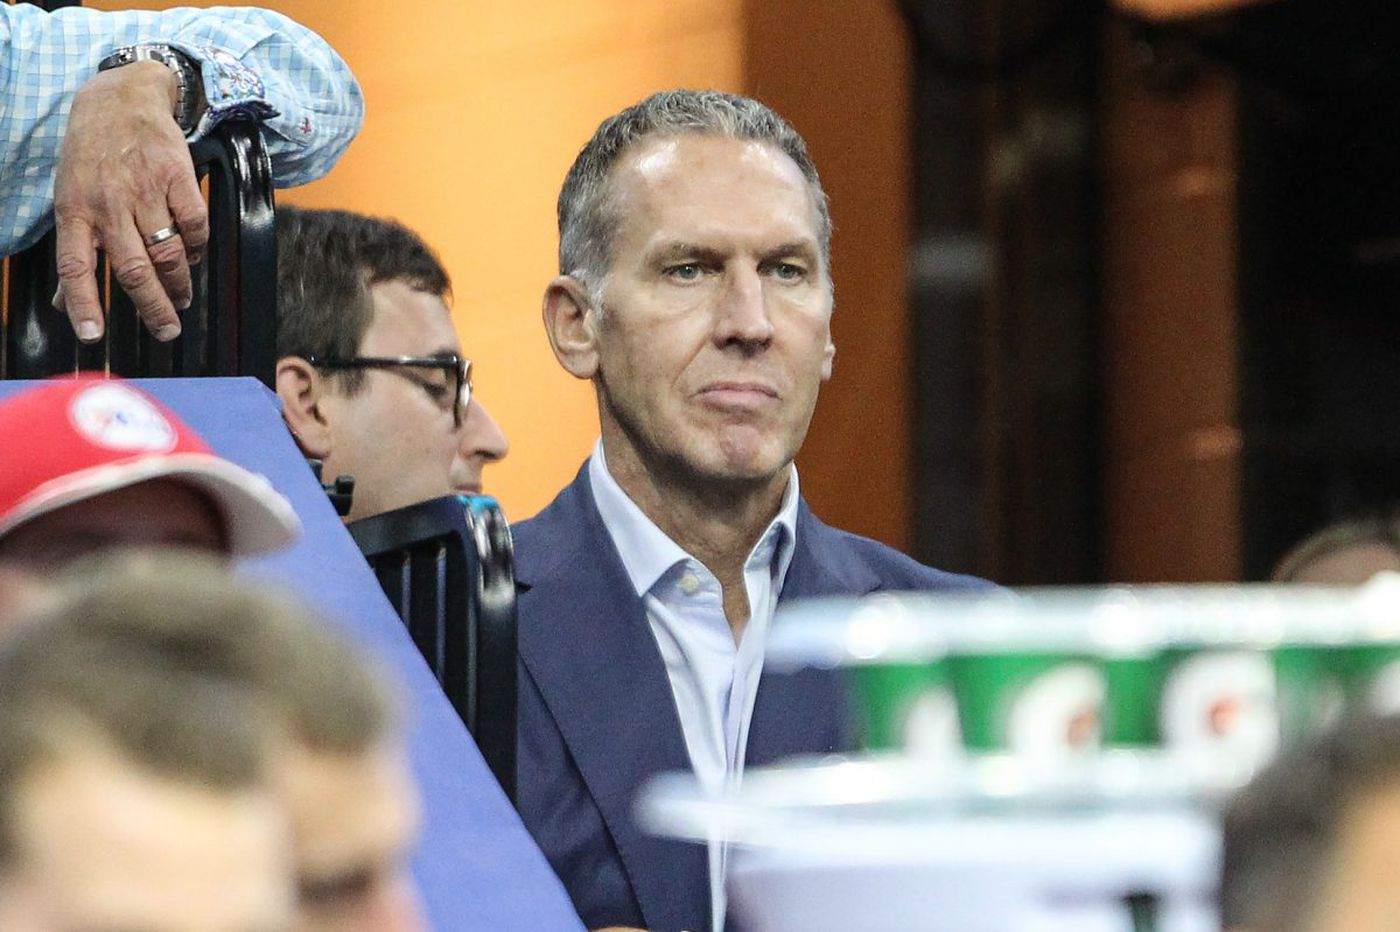 Sixers' GM Bryan Colangelo's core flaw? He was too insecure about Sam Hinkie | Mike Sielski